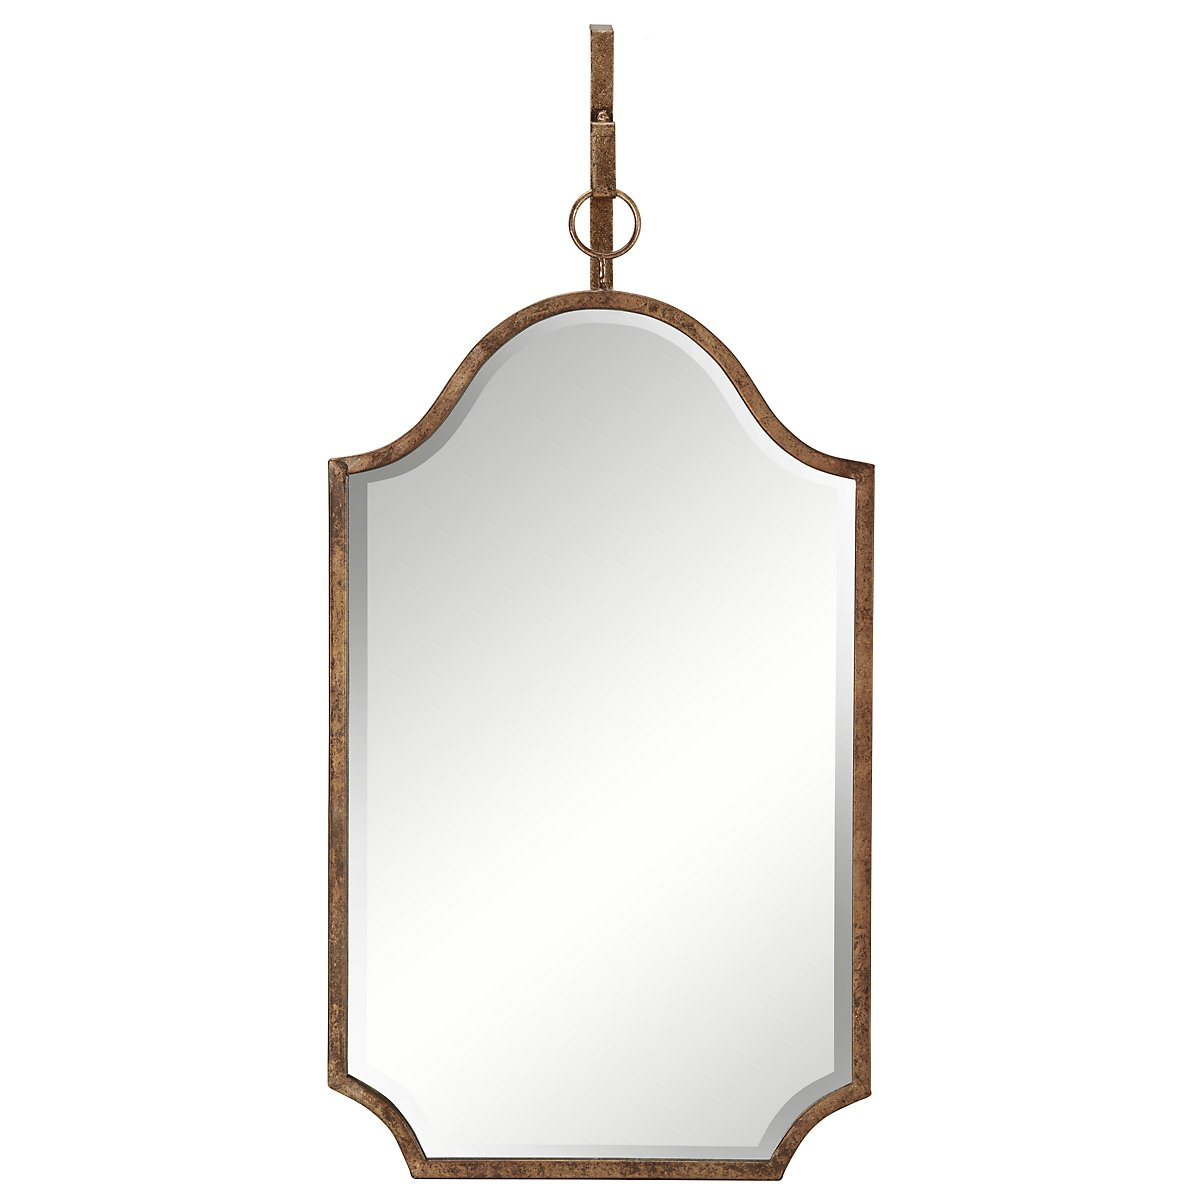 Cuadra Dark Gold Curved Mirror